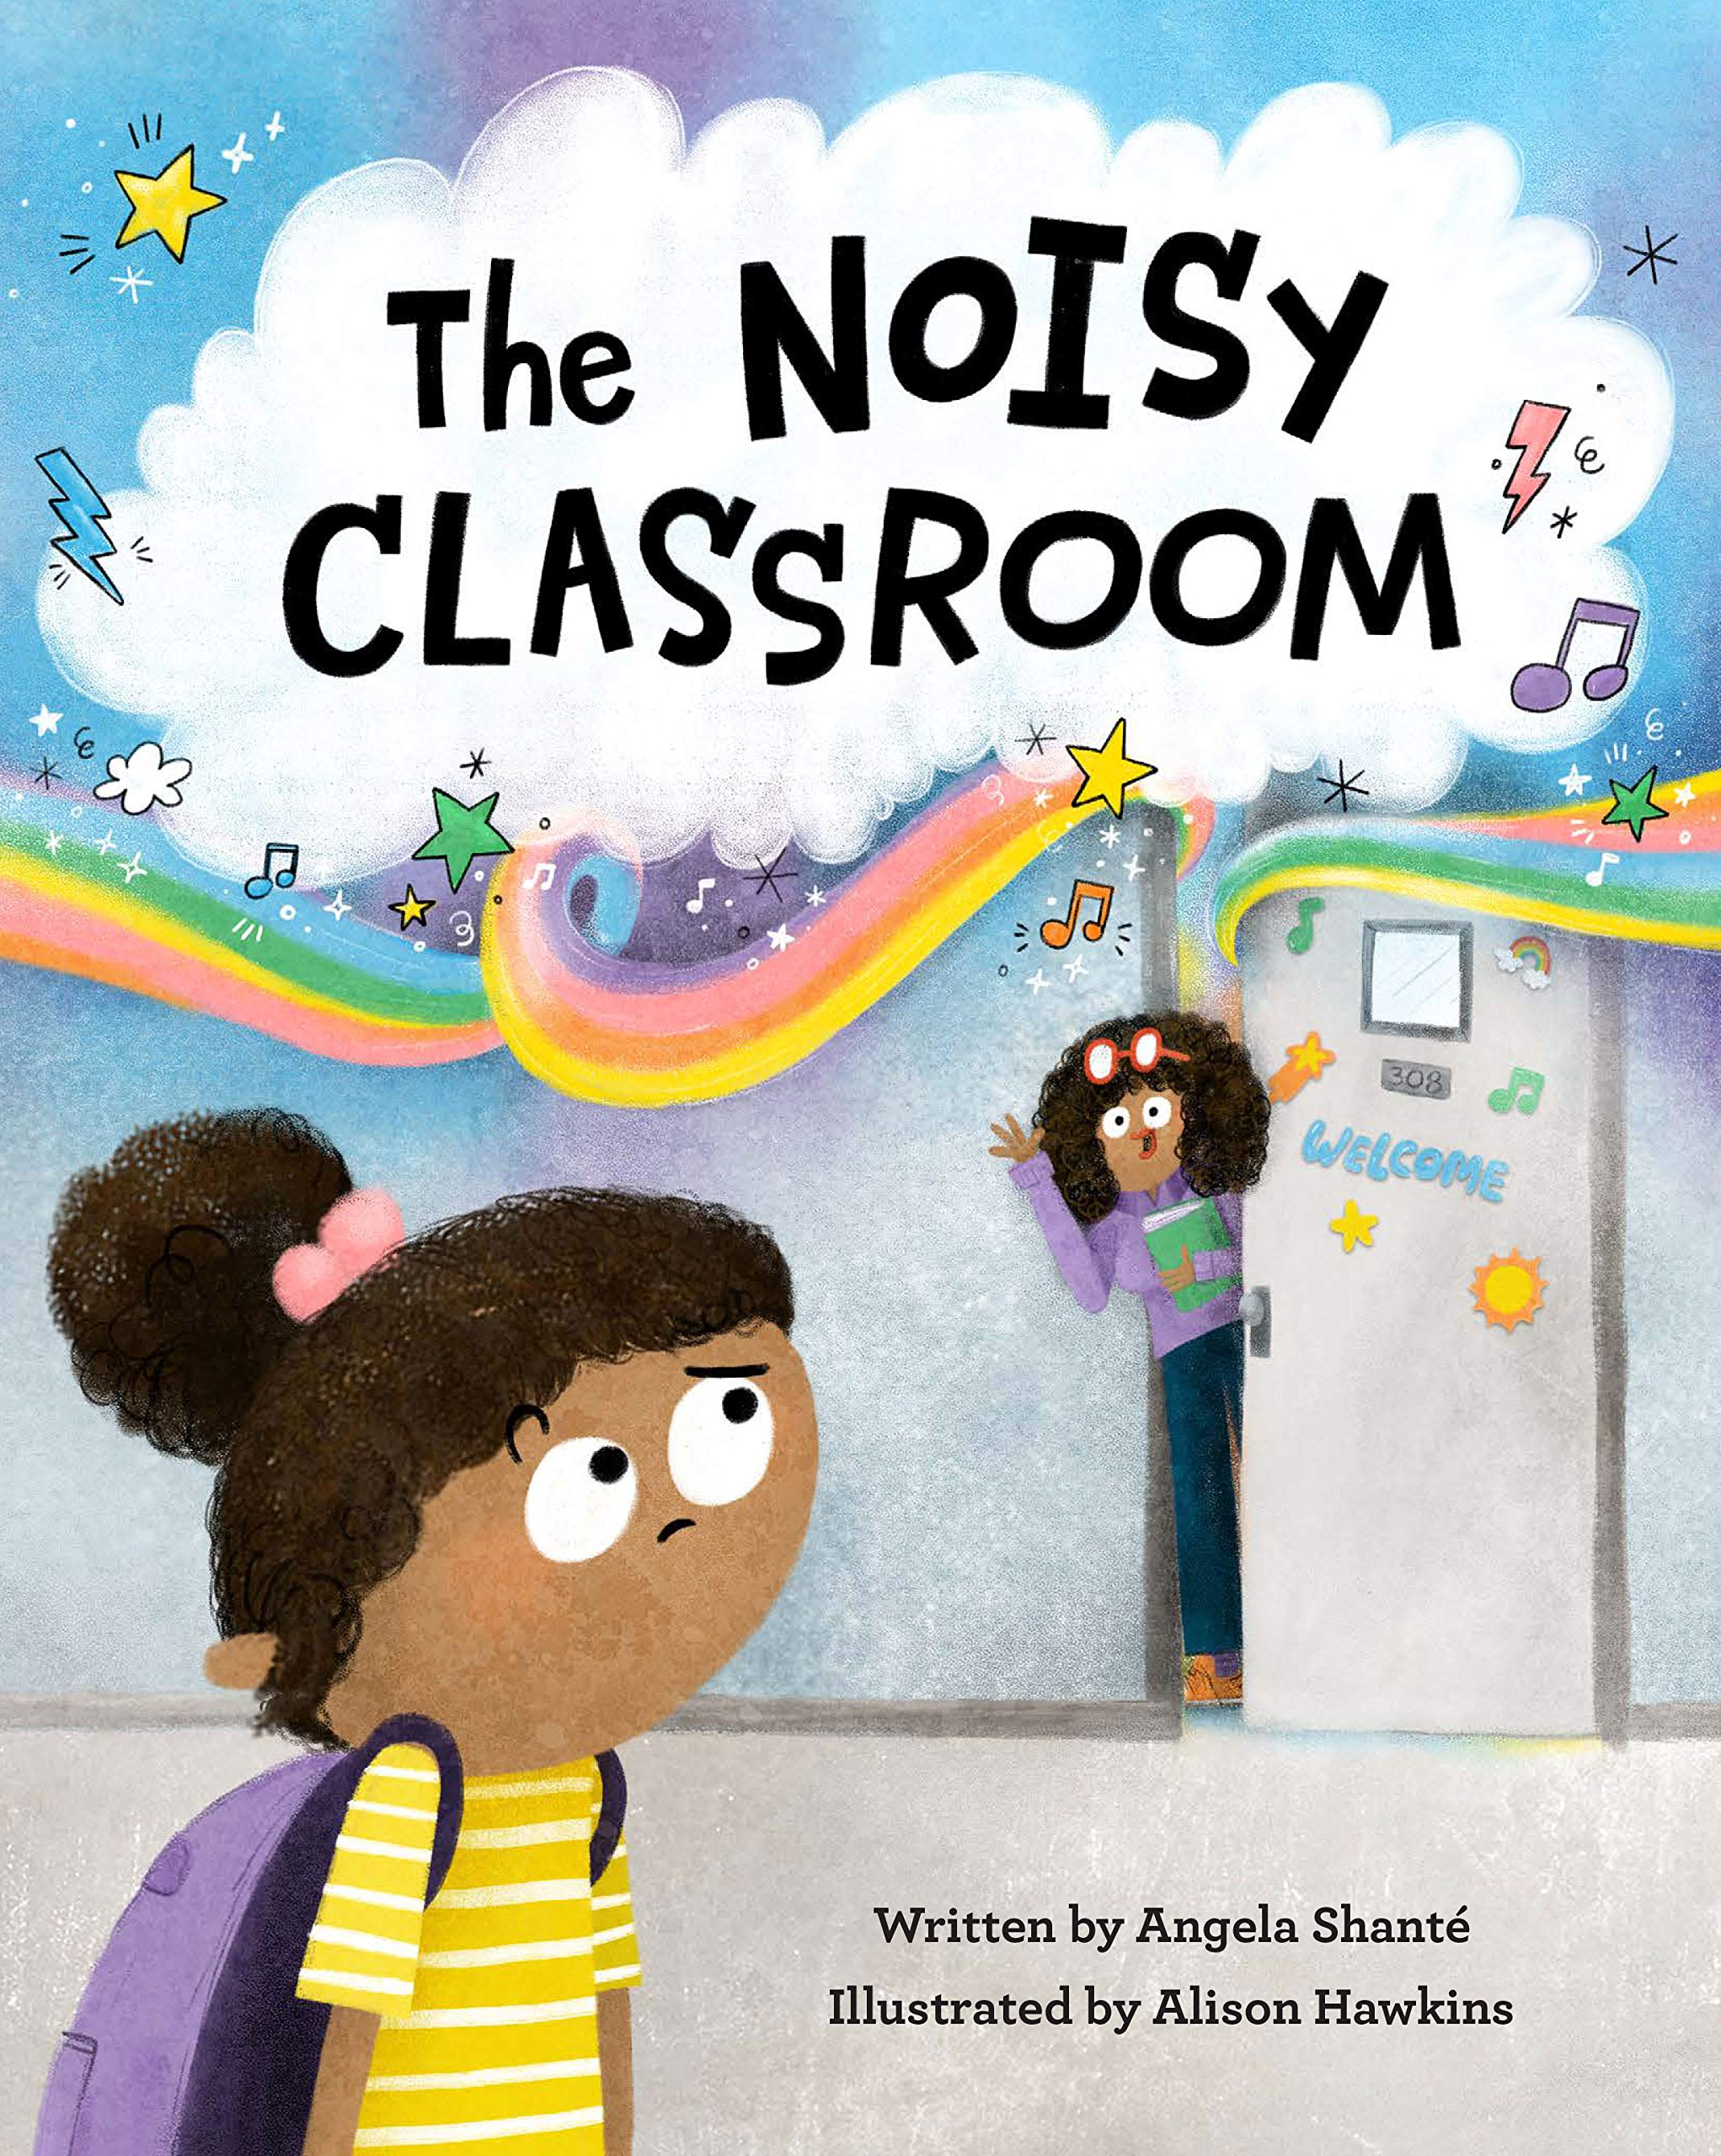 THE NOISY CLASSROOM / ANGELA SHANTE